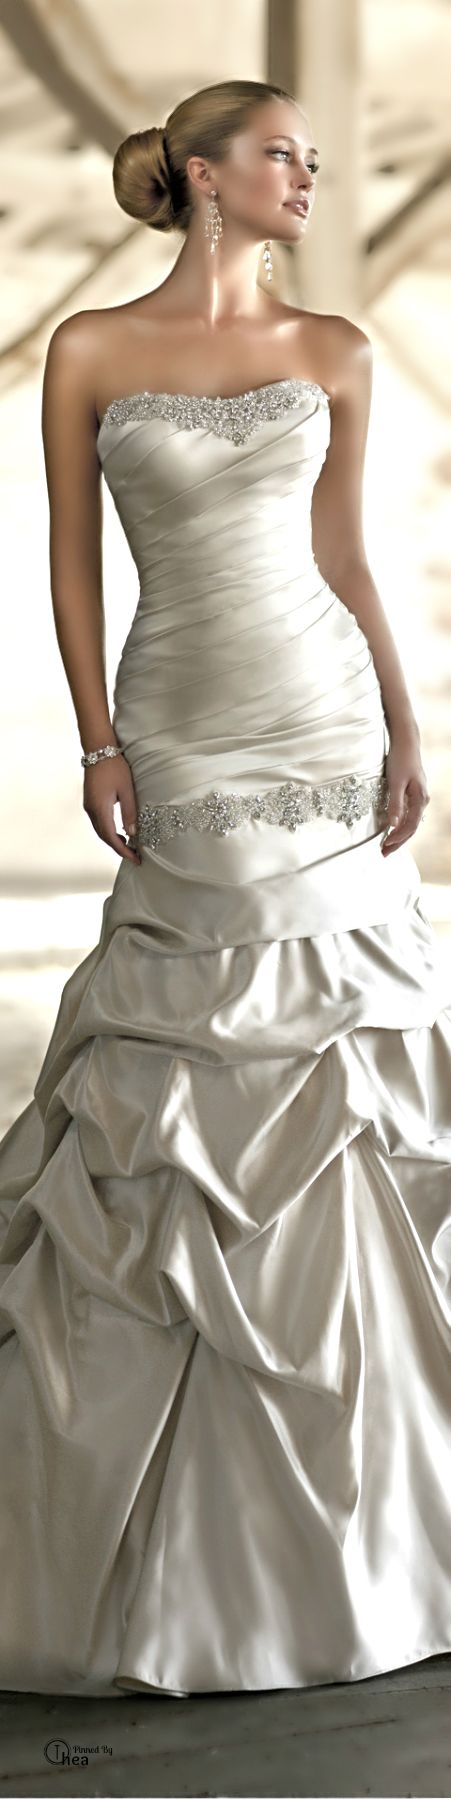 Gorgeous Gown...